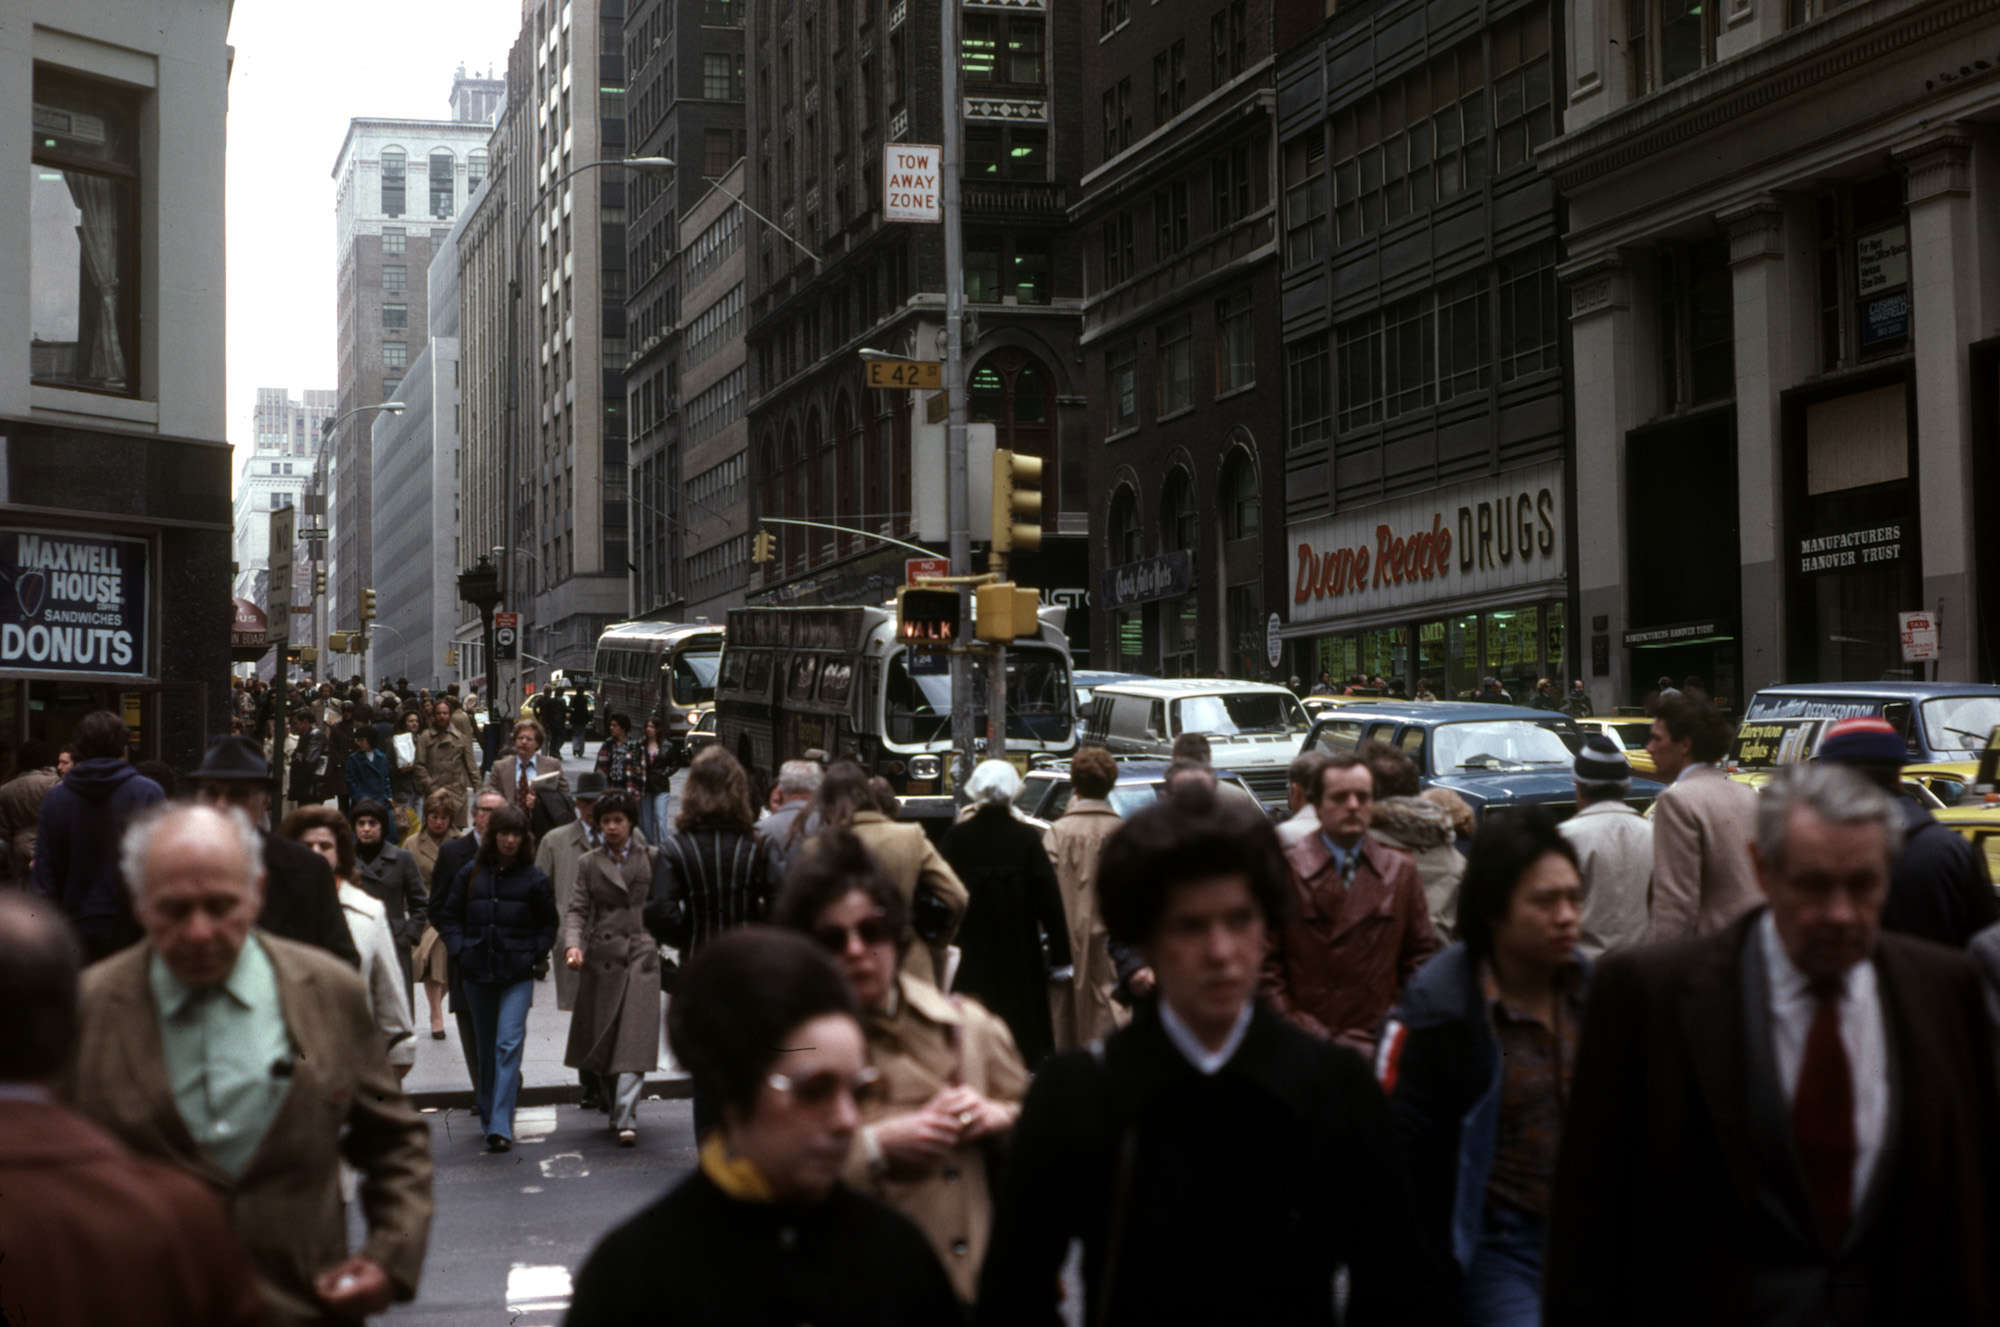 New York City 1979 - busy street with lots of people